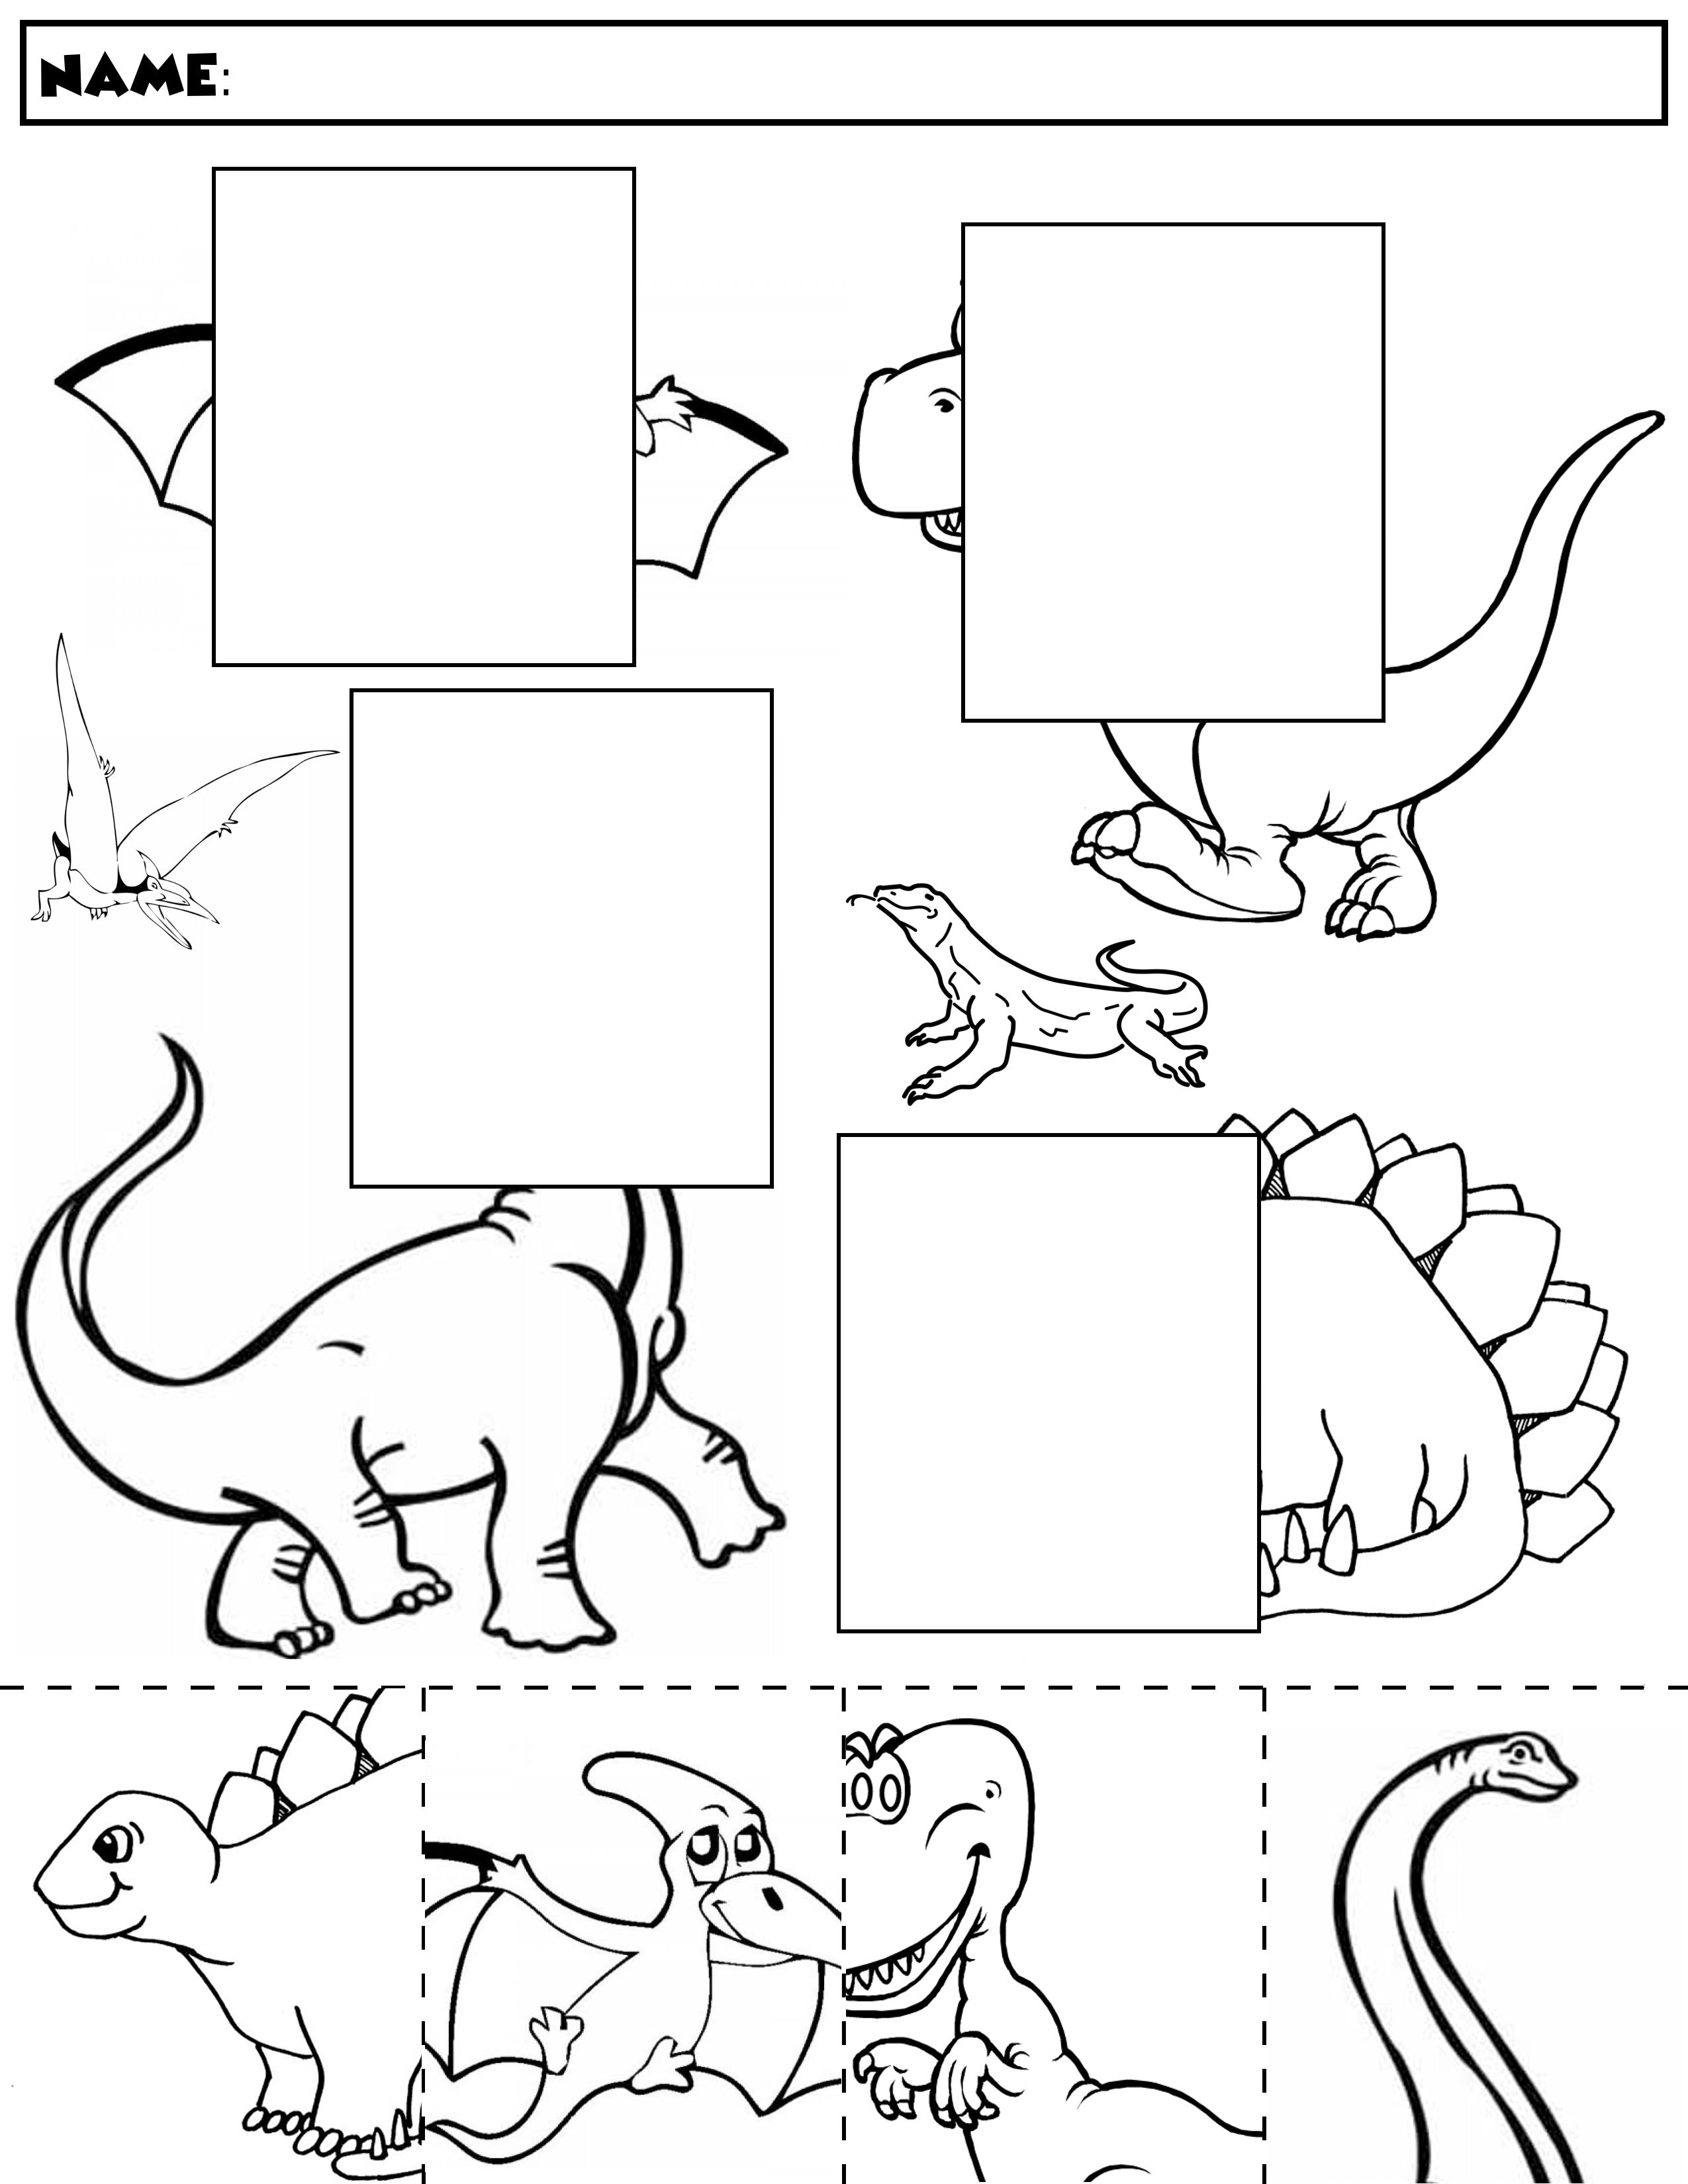 Coloriage Jurassic World Dinosaur Color And Match Group 1 Nouveau Of Coloriage Jurassic World